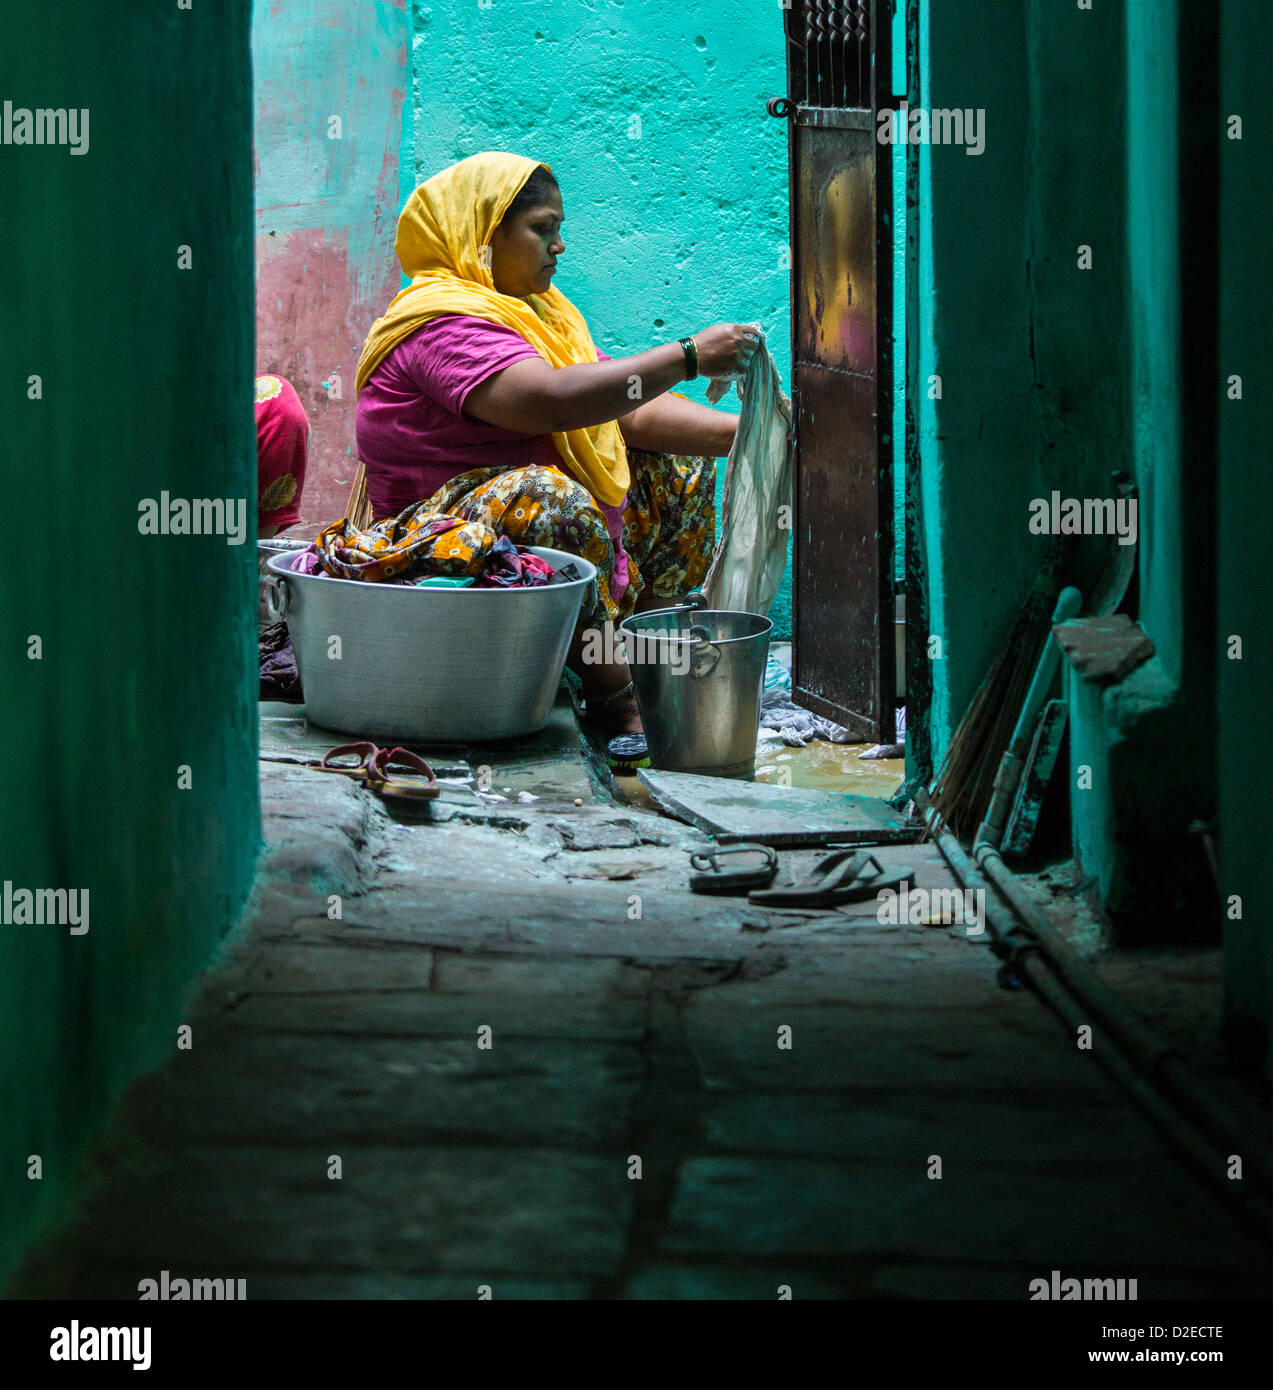 Woman washing clothes in the old town, Ahmedabad, Gujarat, India - Stock Image